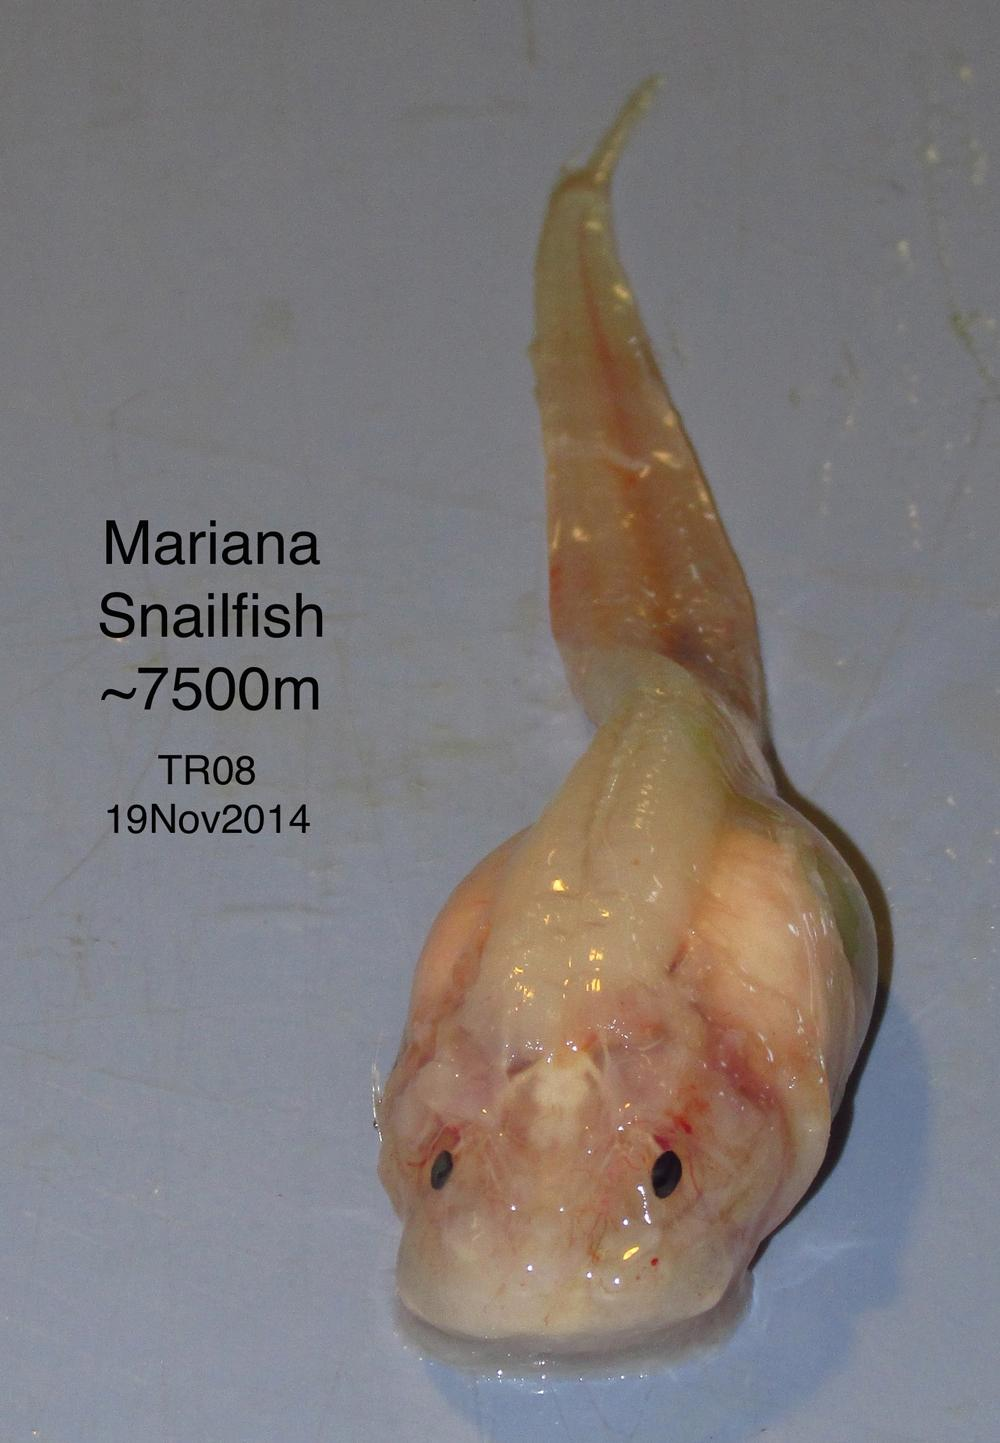 Mānoa New Species And Surprising Findings In The Mariana